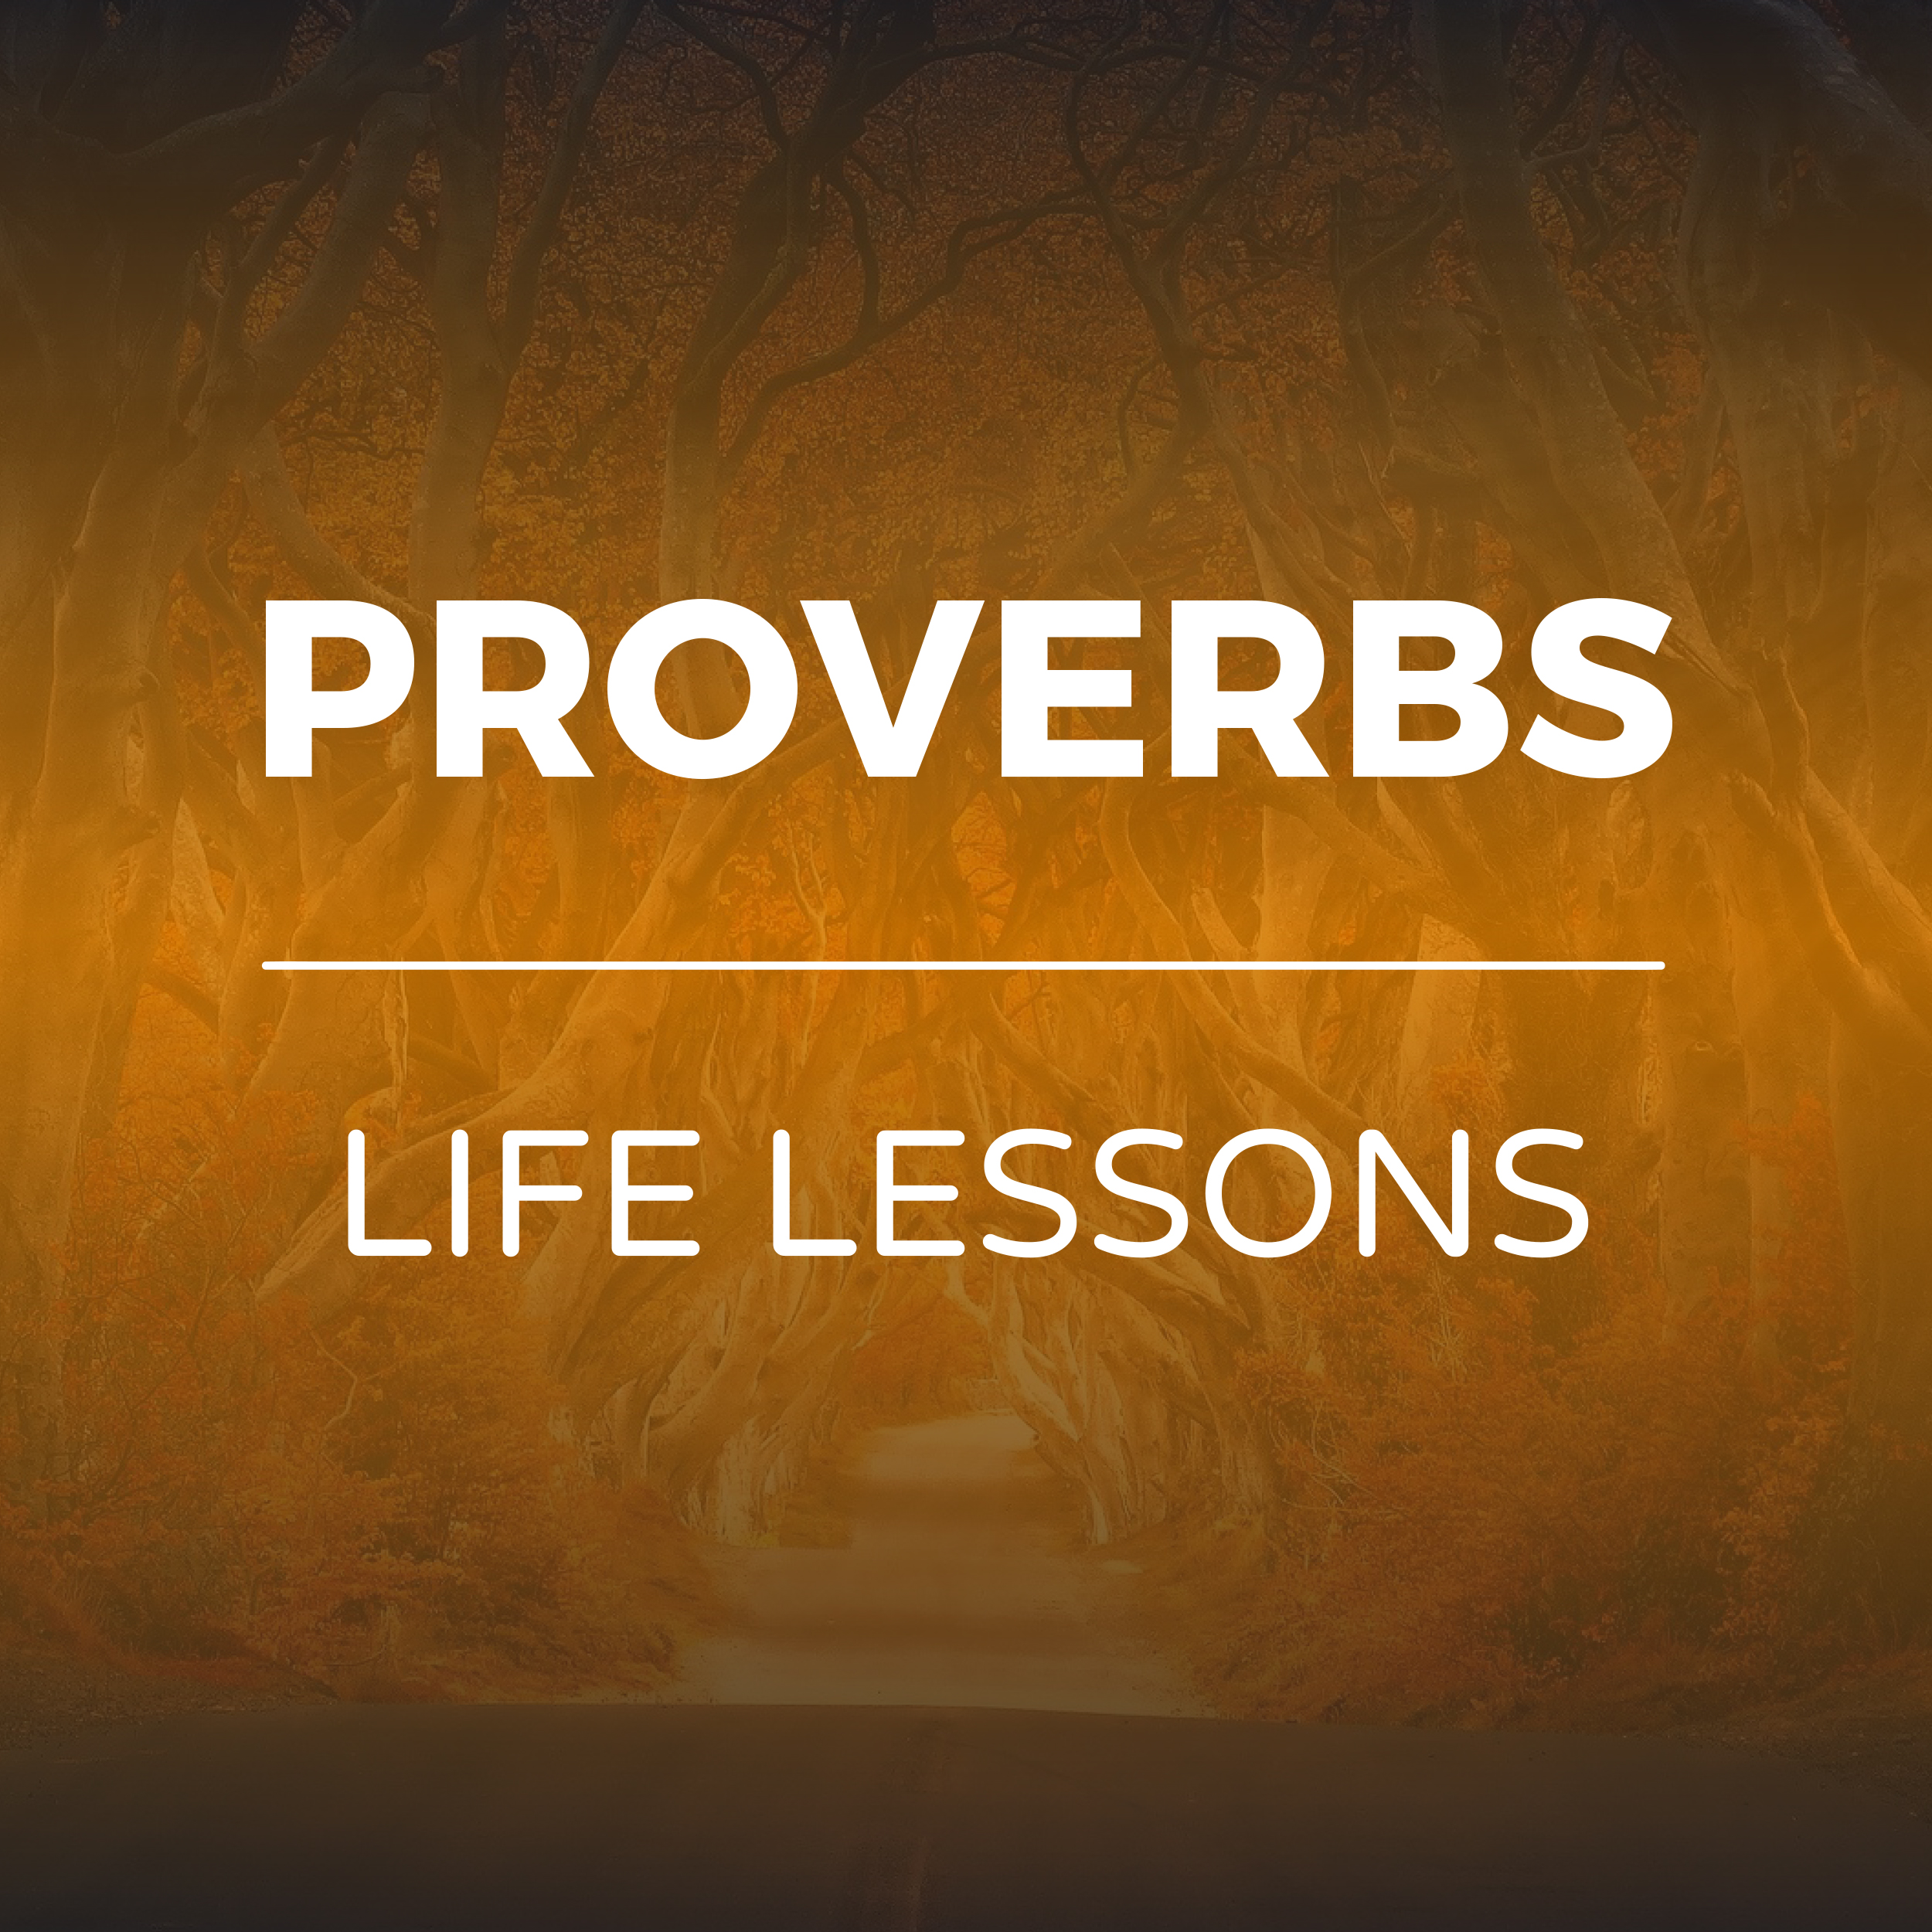 Proverbs - Life Lessons Sermon Series - Hope Church Huddersfield